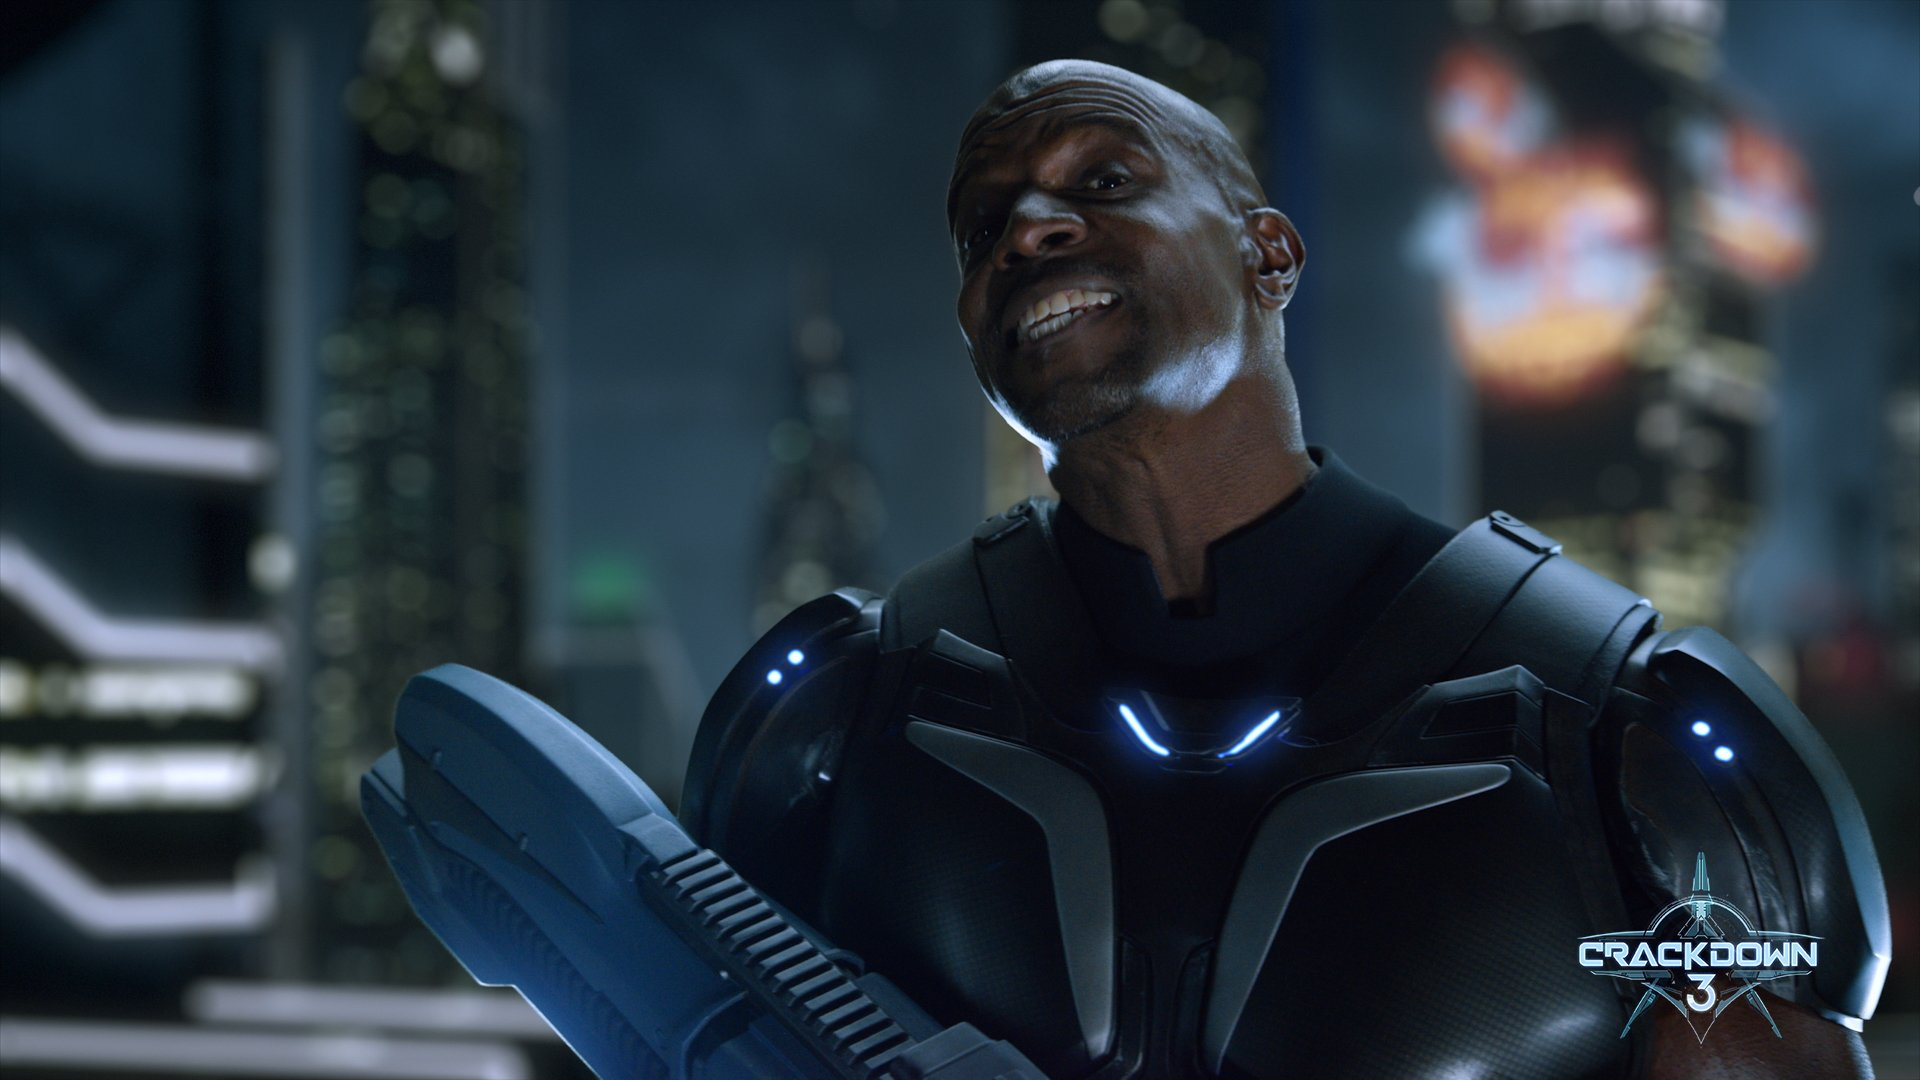 crackdown 3 starting agent